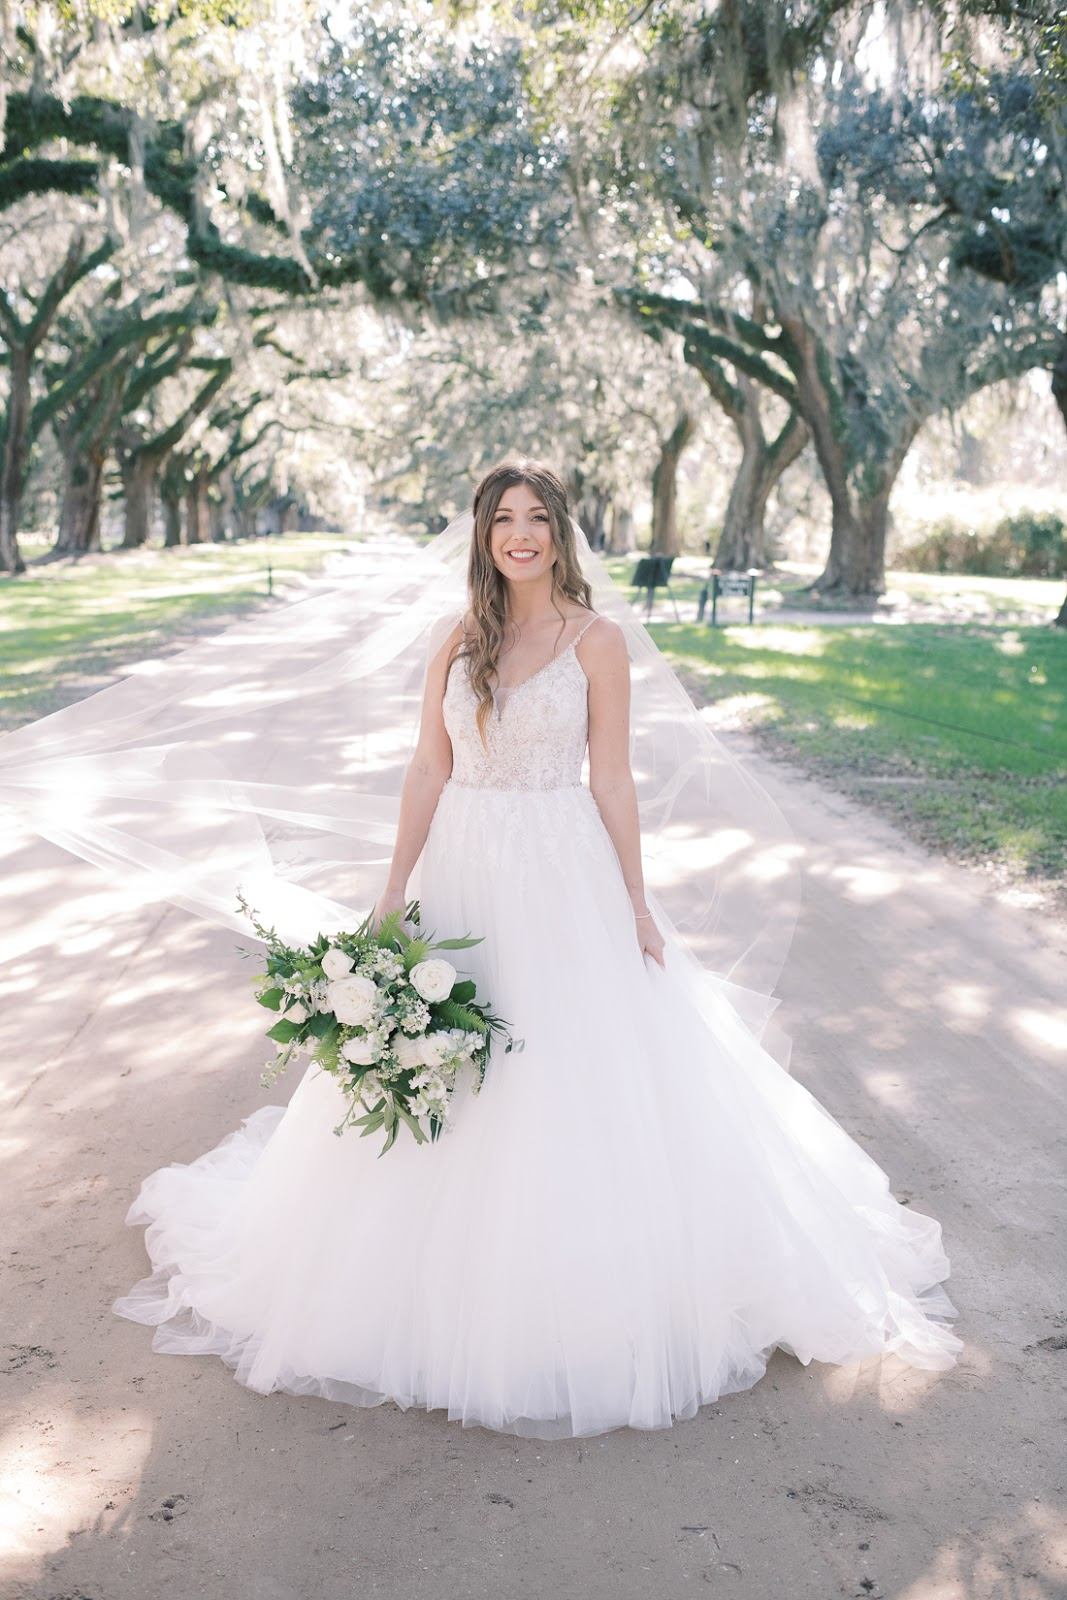 My Wedding Dress Details: Bridal Portraits - Chasing Cinderella